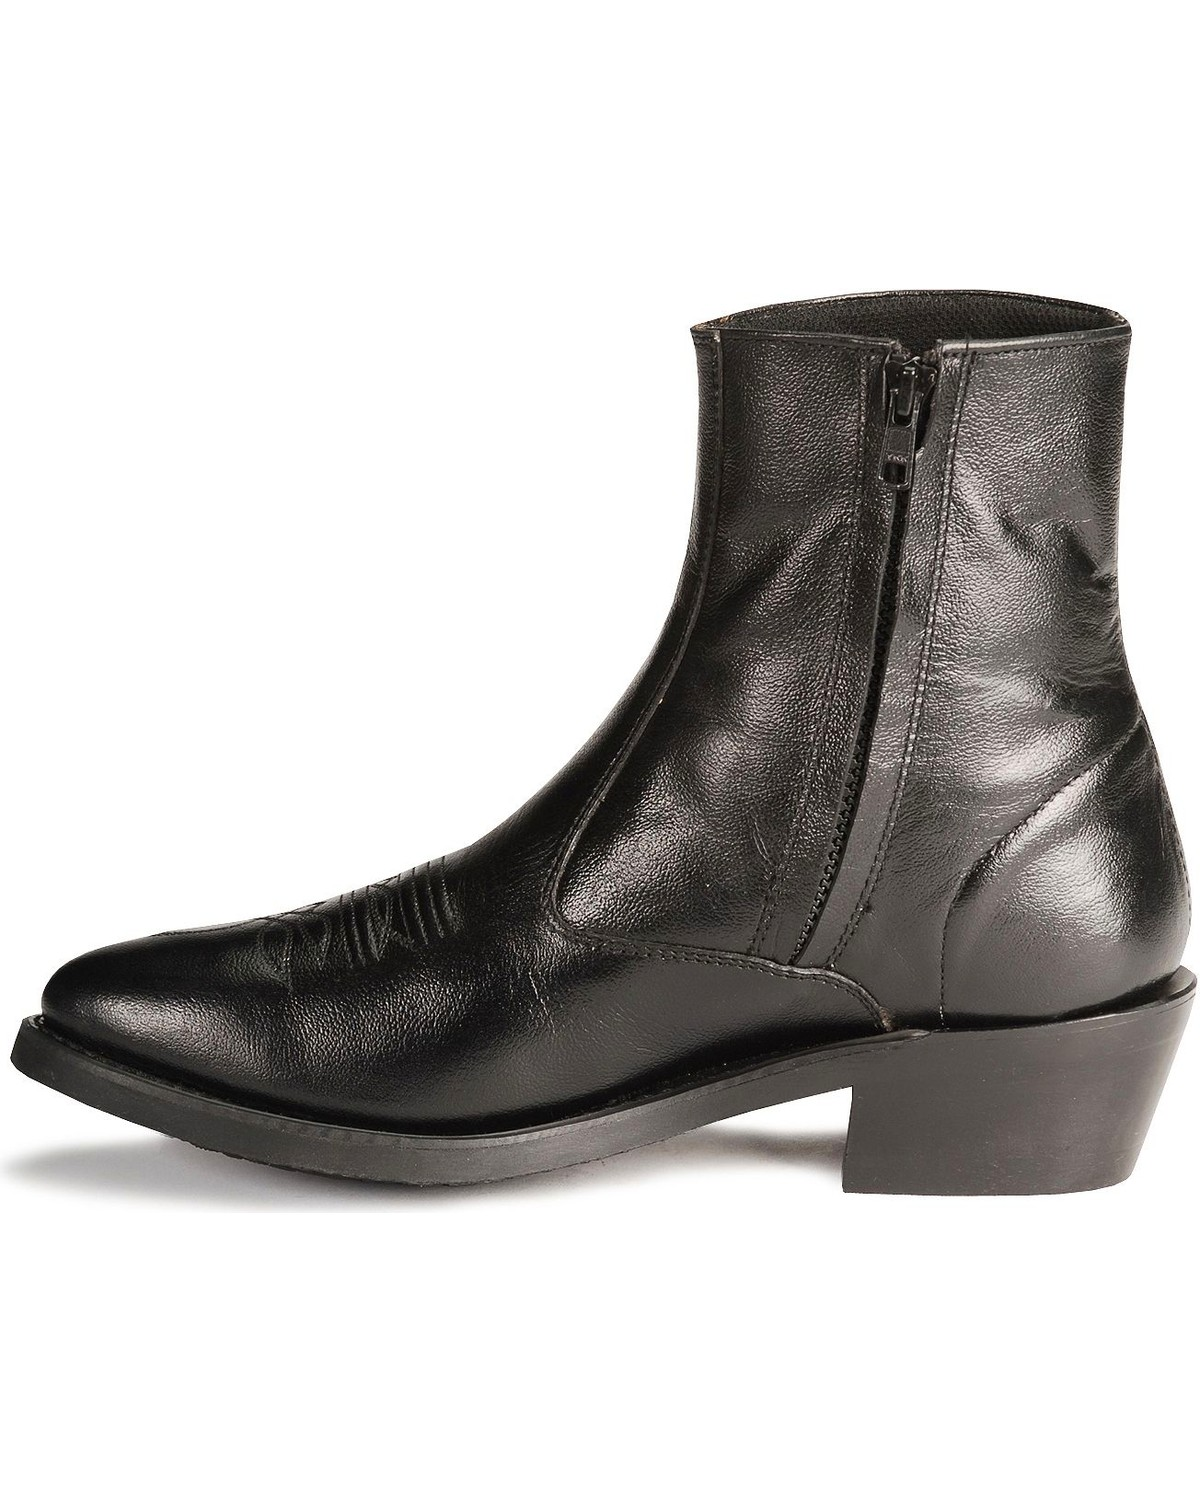 Shop black back zip ankle boot at Neiman Marcus, where you will find free shipping on the latest in fashion from top designers.